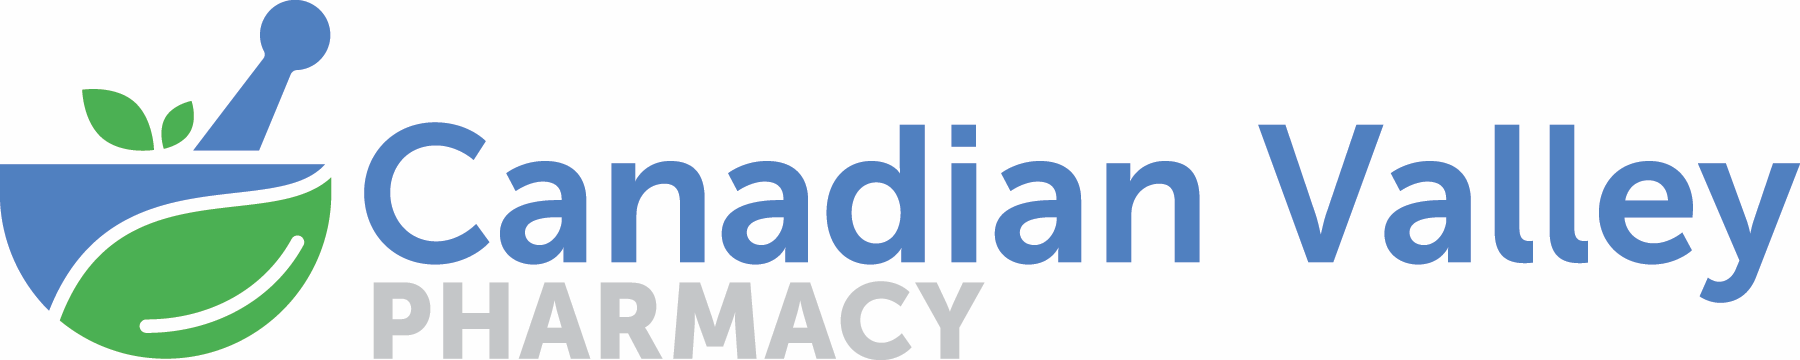 canadianvalleyrx Logo